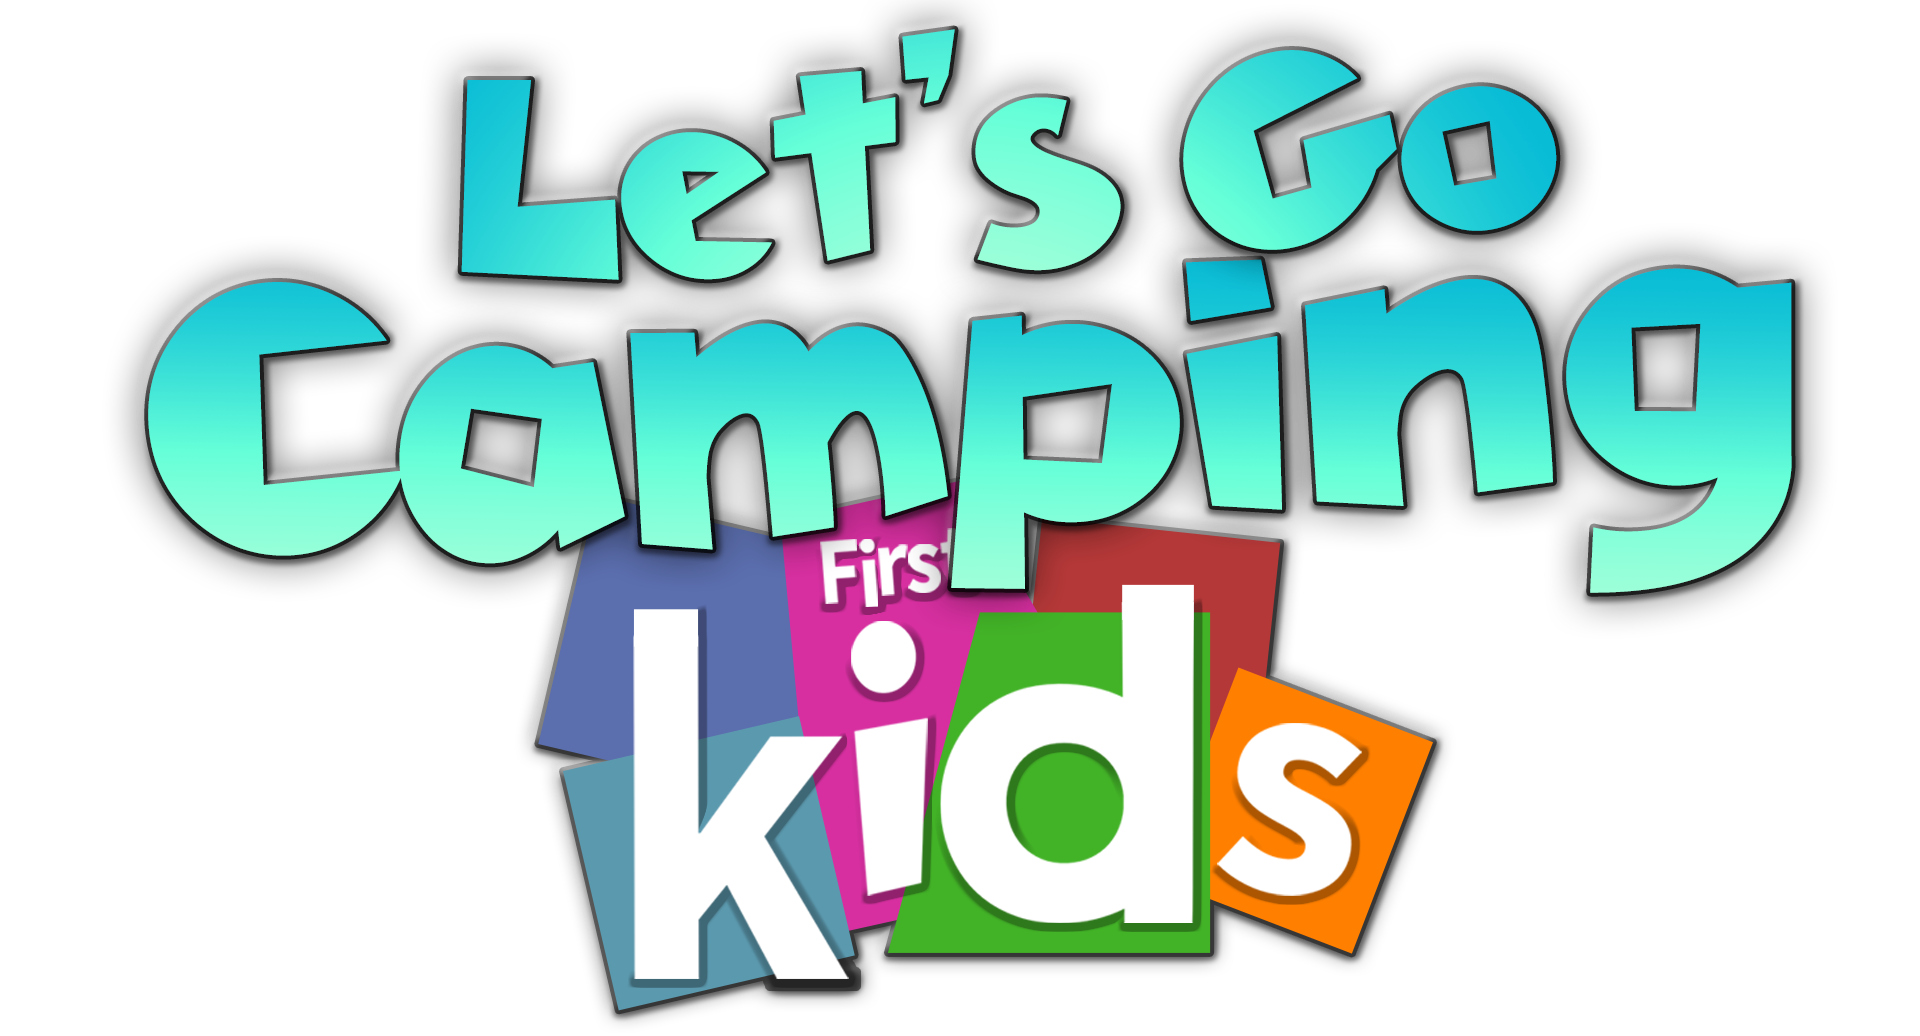 Let's Go Camping First Kids.png